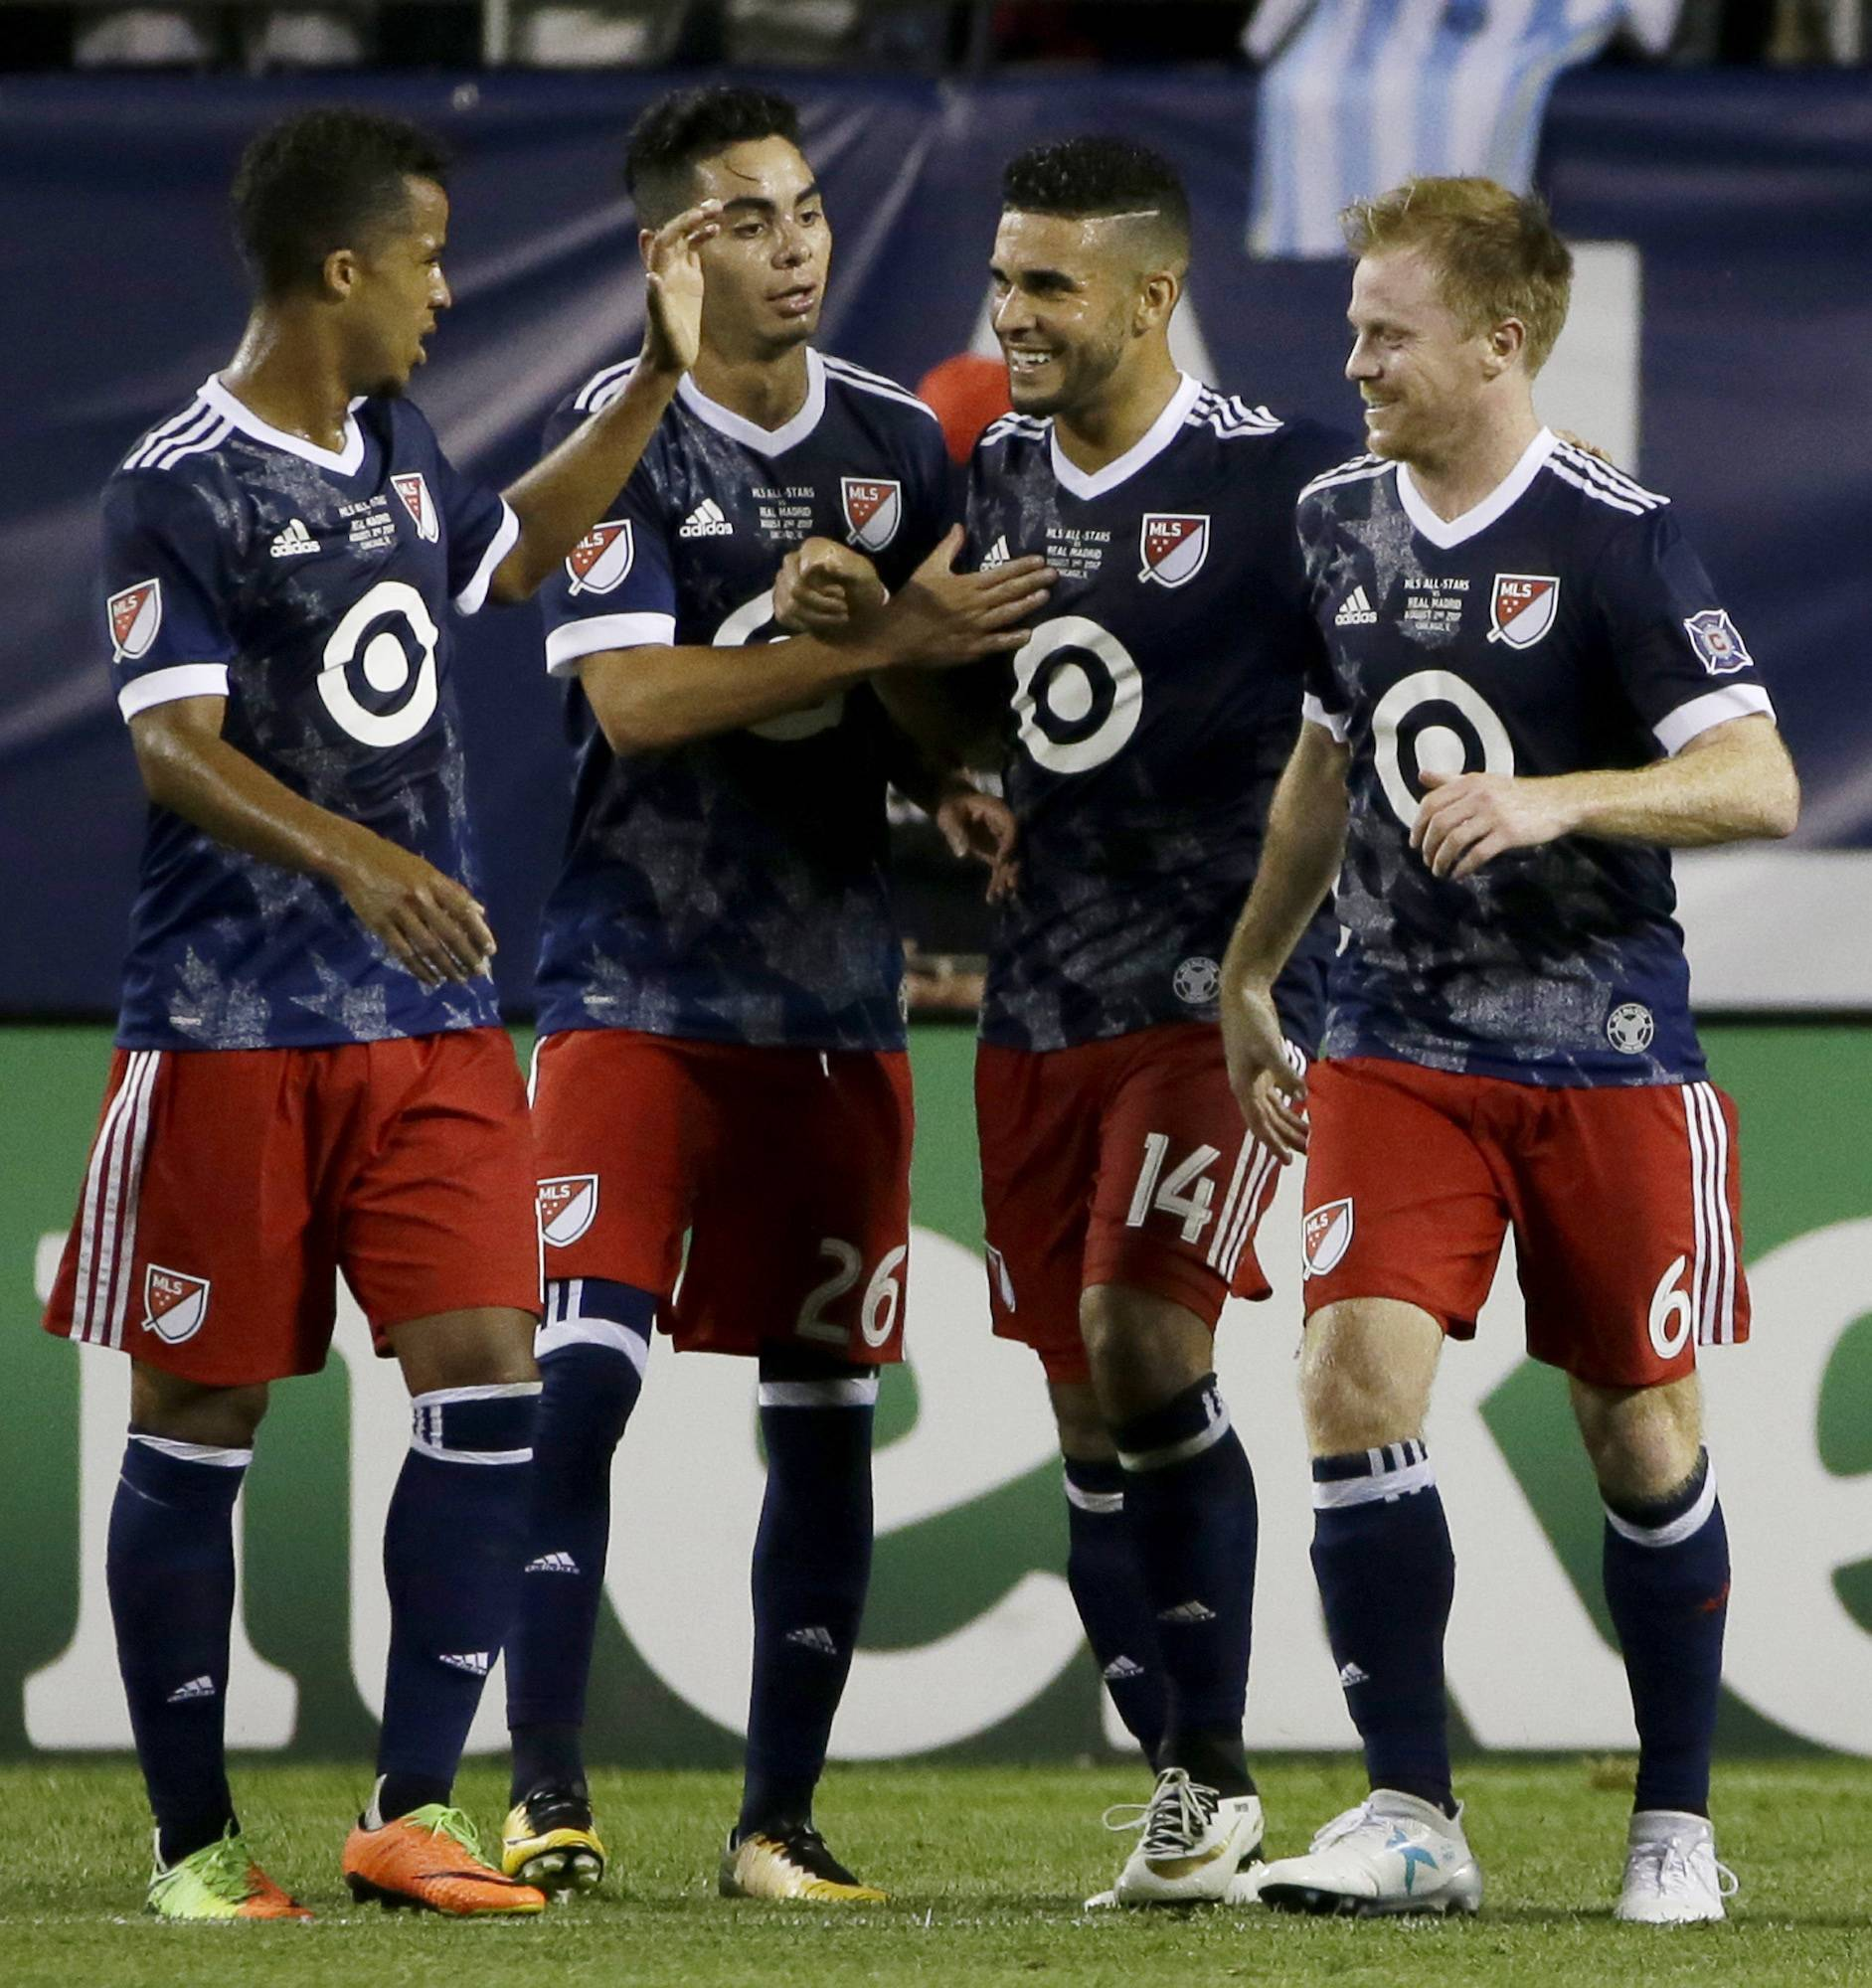 MLS All-Stars' Dom Dwyer (14) celebrates with teammates, including Chicago Fire midfielder Dax McCarty at right, after scoring against Real Madrid during the second half of the MLS All-Star Game, Wednesday in Chicago. Real Madrid won 4-2 in a penalty shootout.